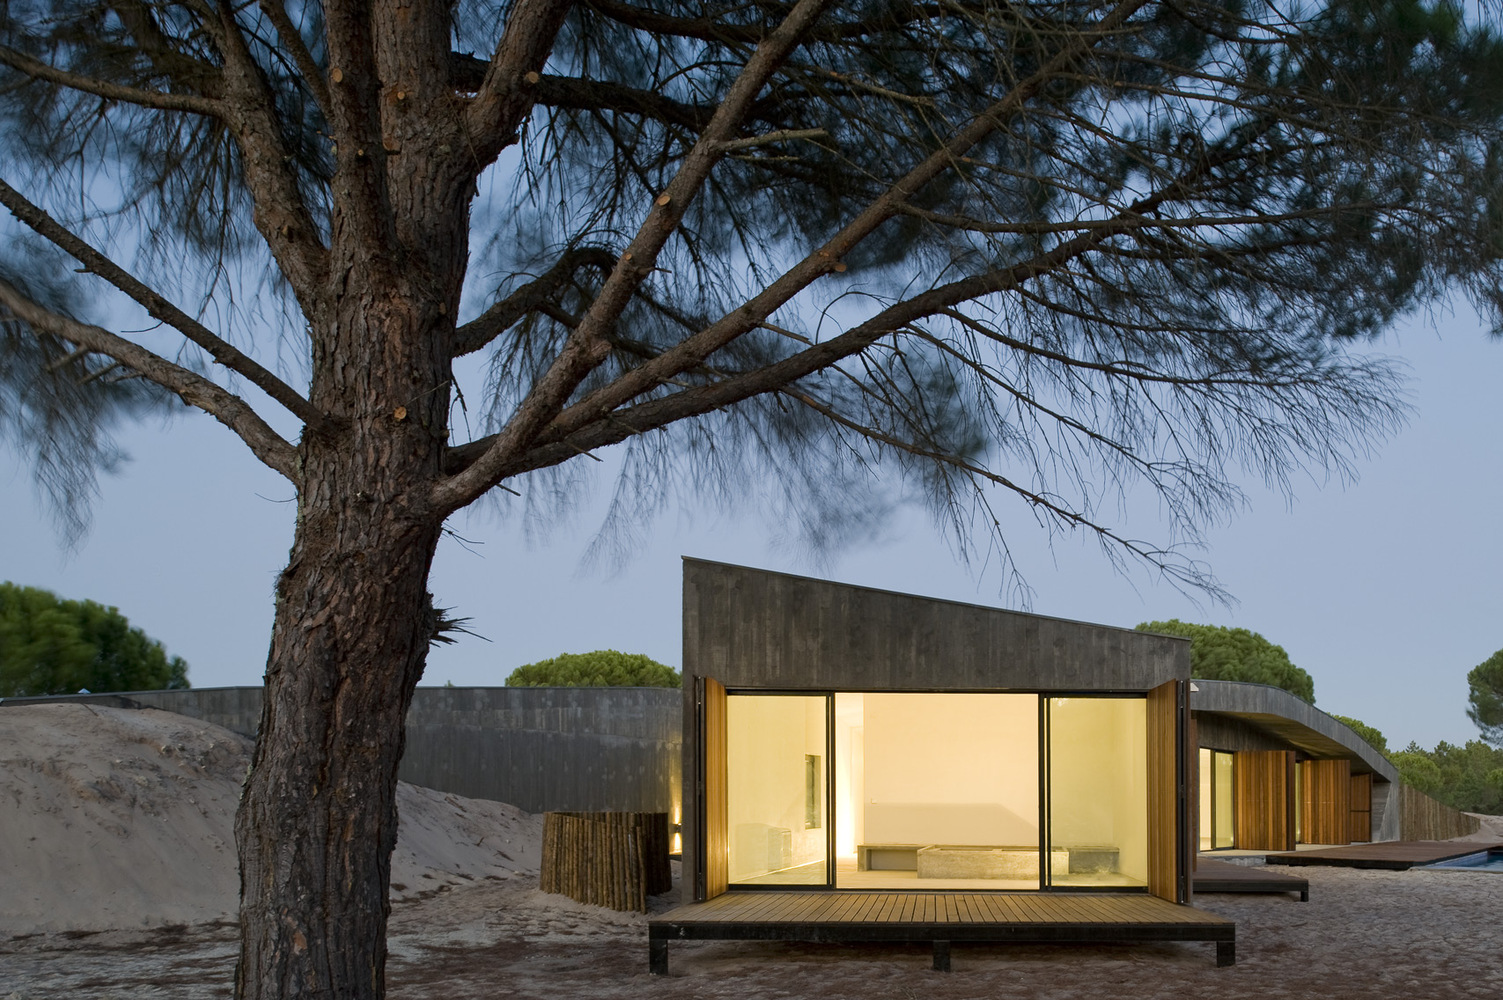 Discover Comporta's Dune House by Pereira Miguel Arquitectos dune house Discover Comporta's Dune House by Pereira Miguel Arquitectos a690e9d5 ba4c 4aff 9bc6 c7366f50591f